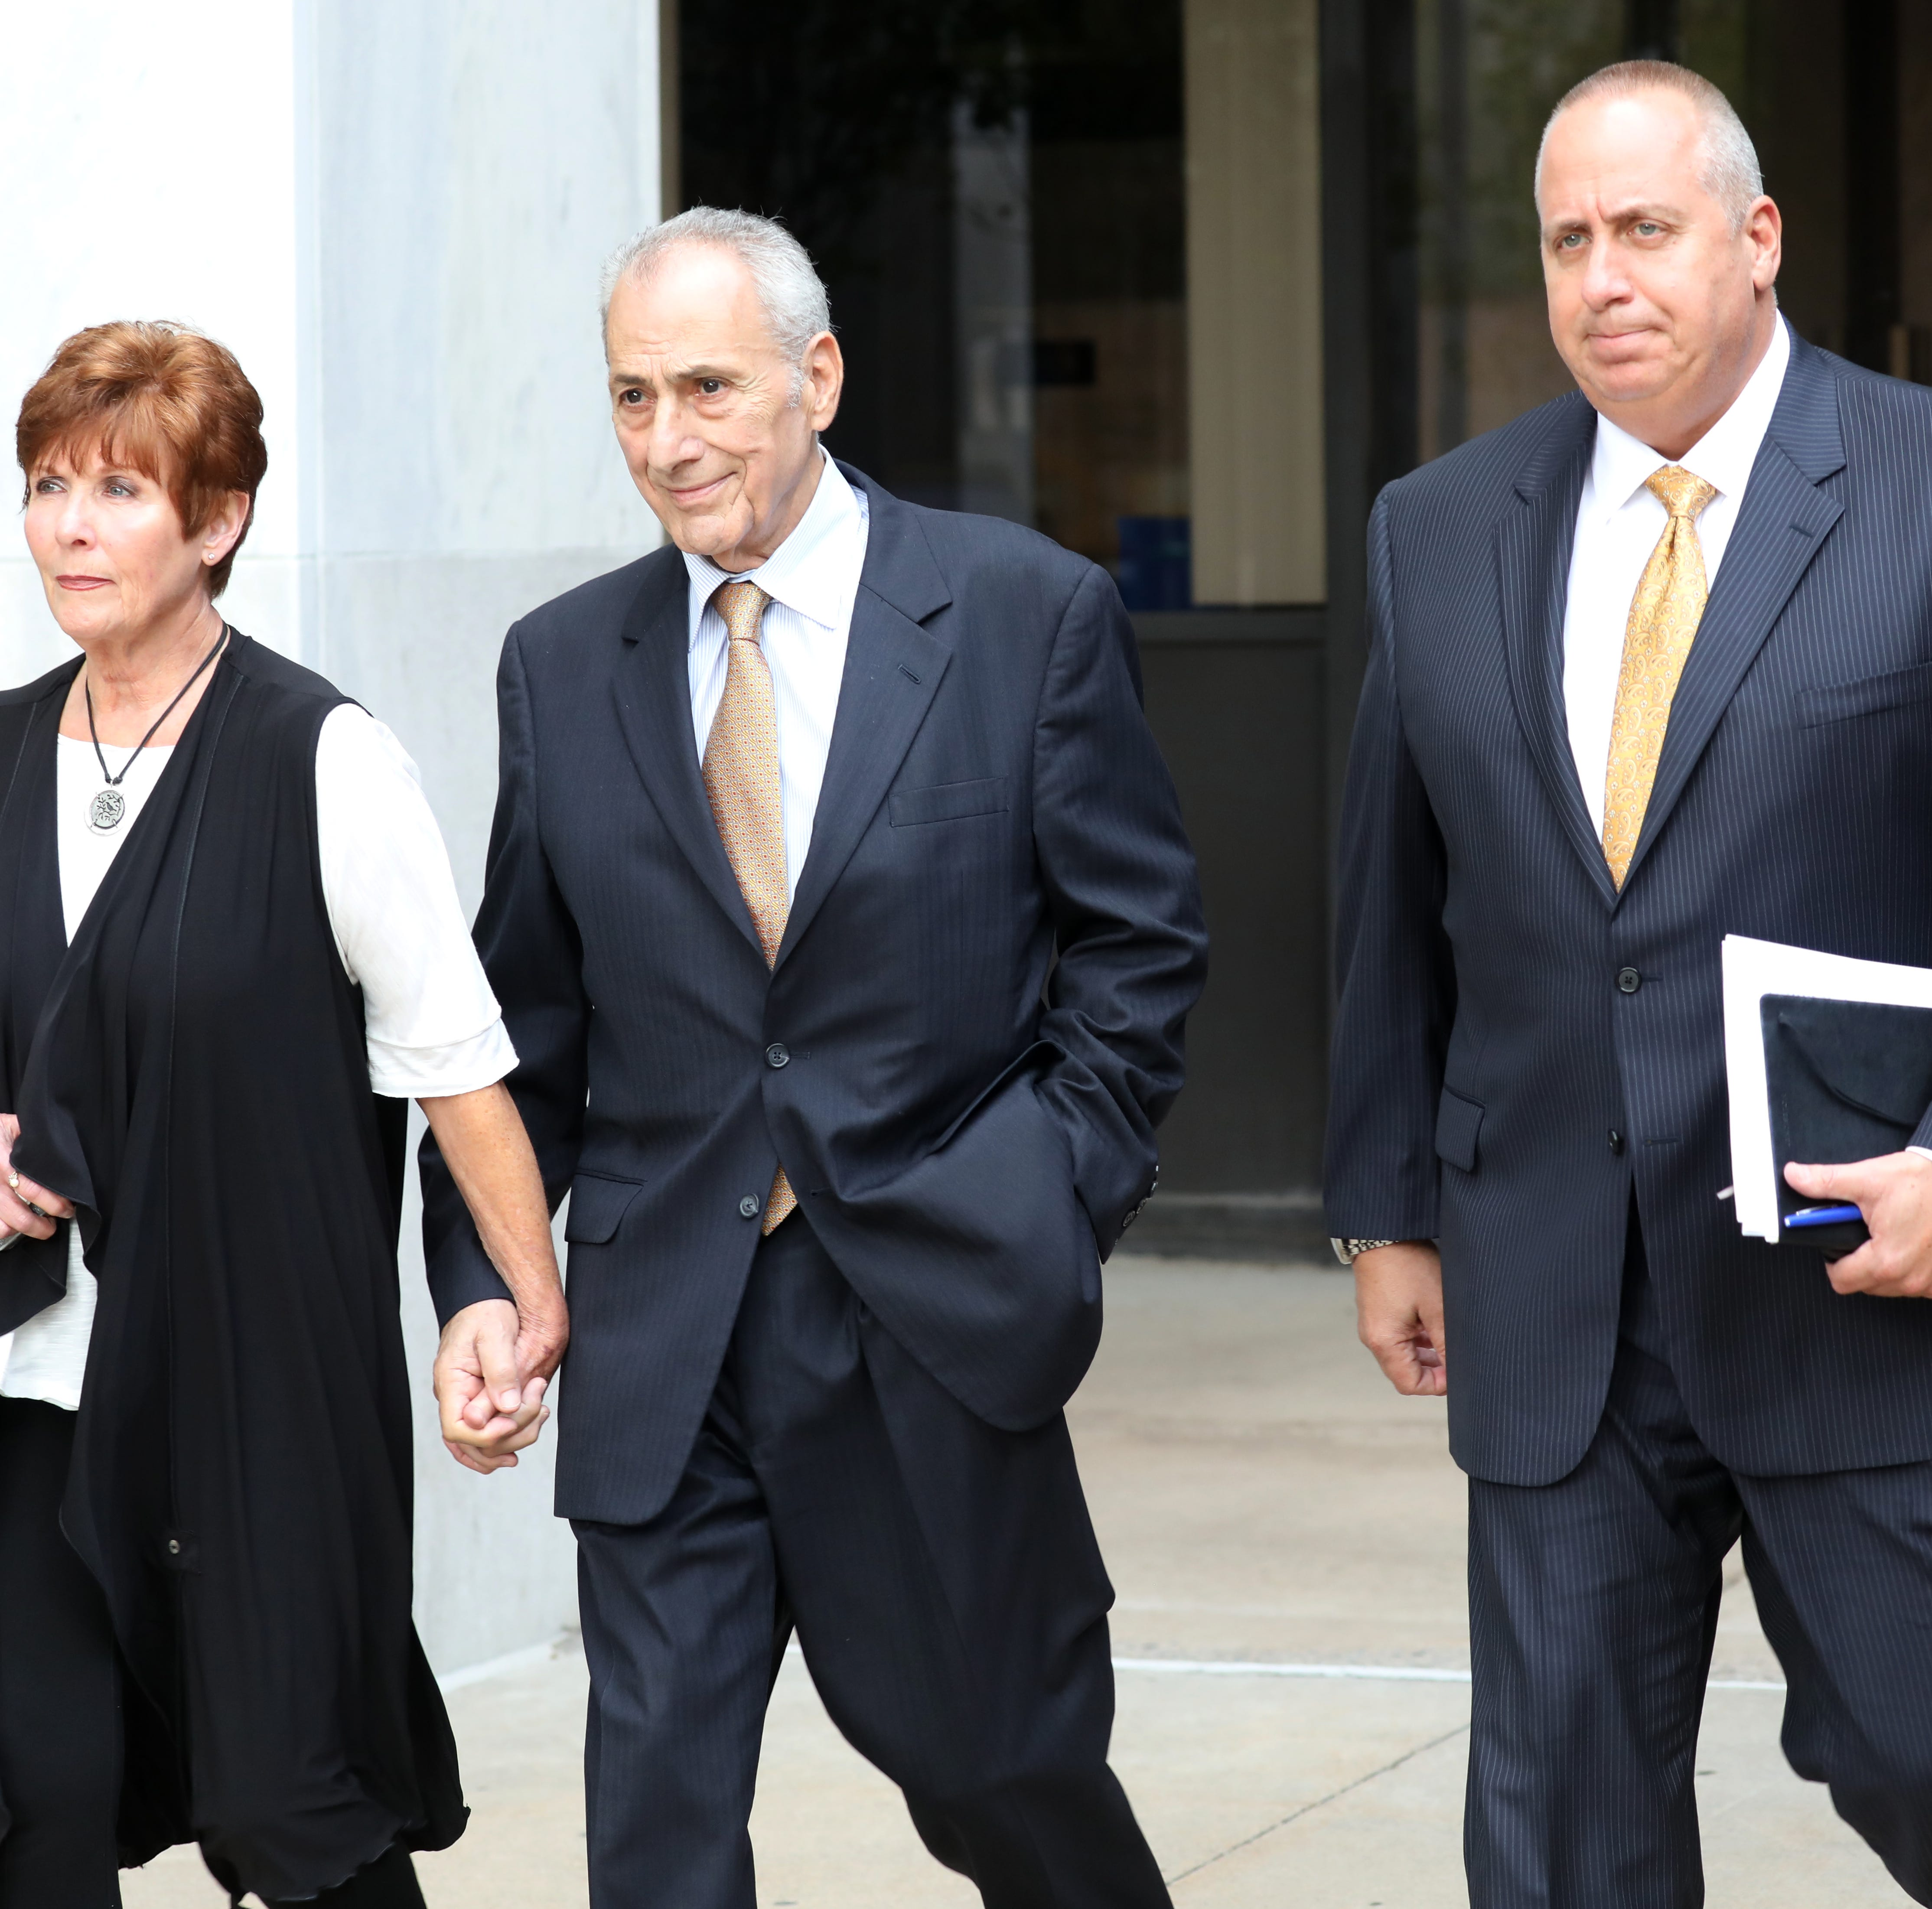 Assemblyman Joe Errigo charged with accepting a bribe to affect a development